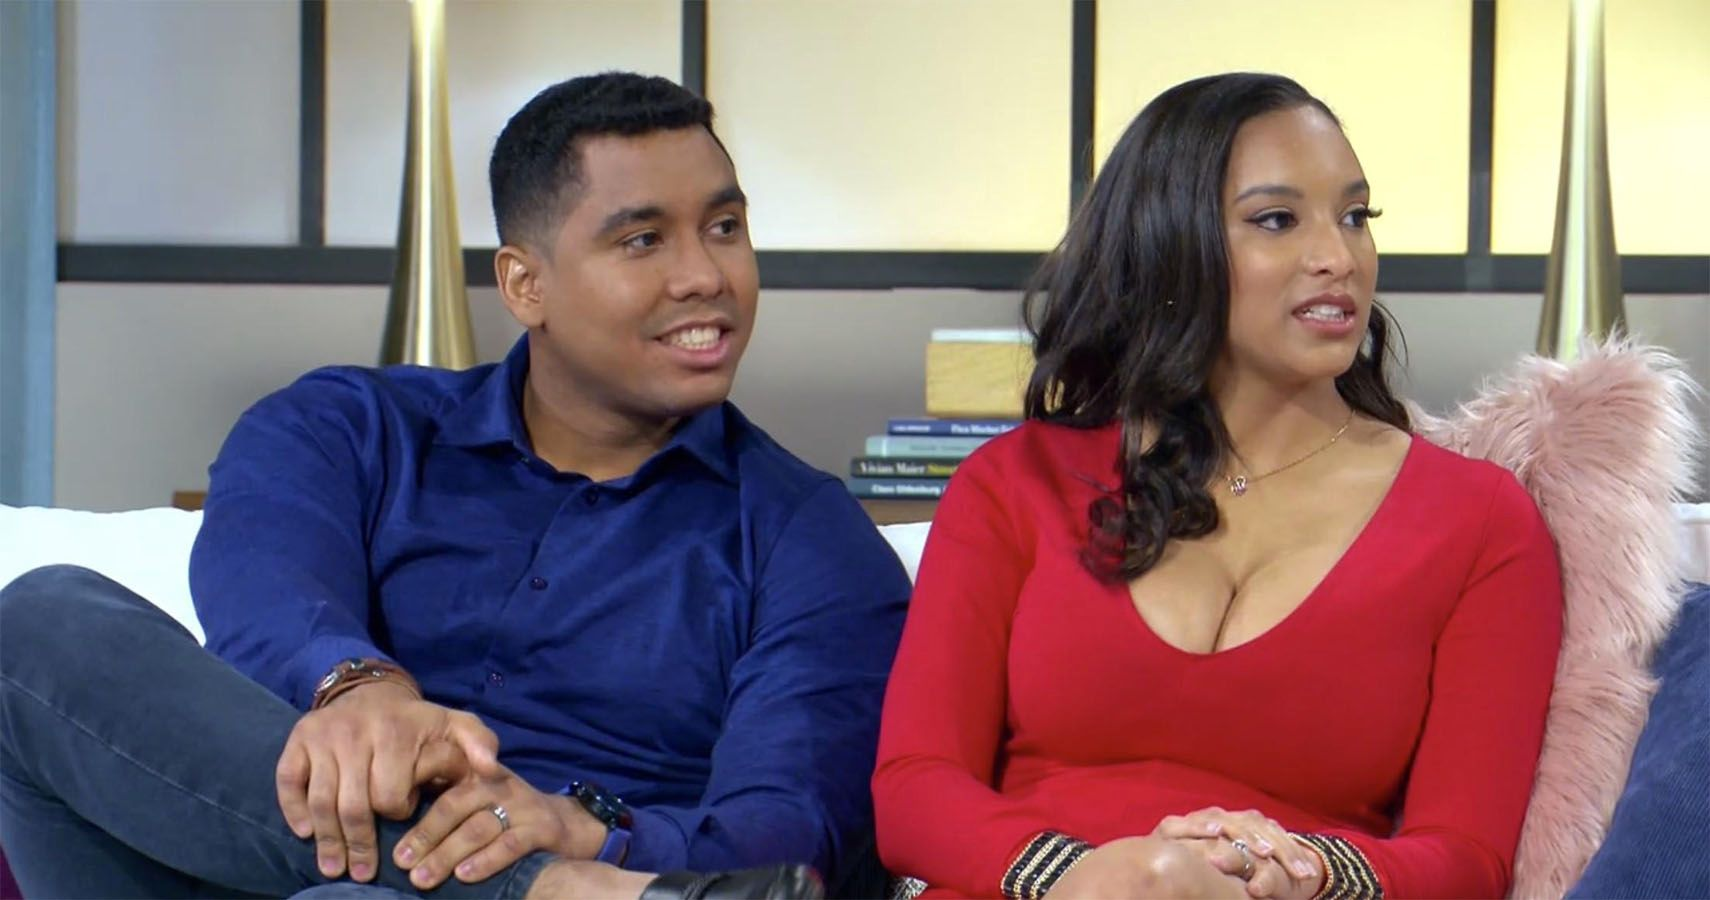 What's the Status of 90 Day Fiancé's Chantel and Pedro's Relationship Now?